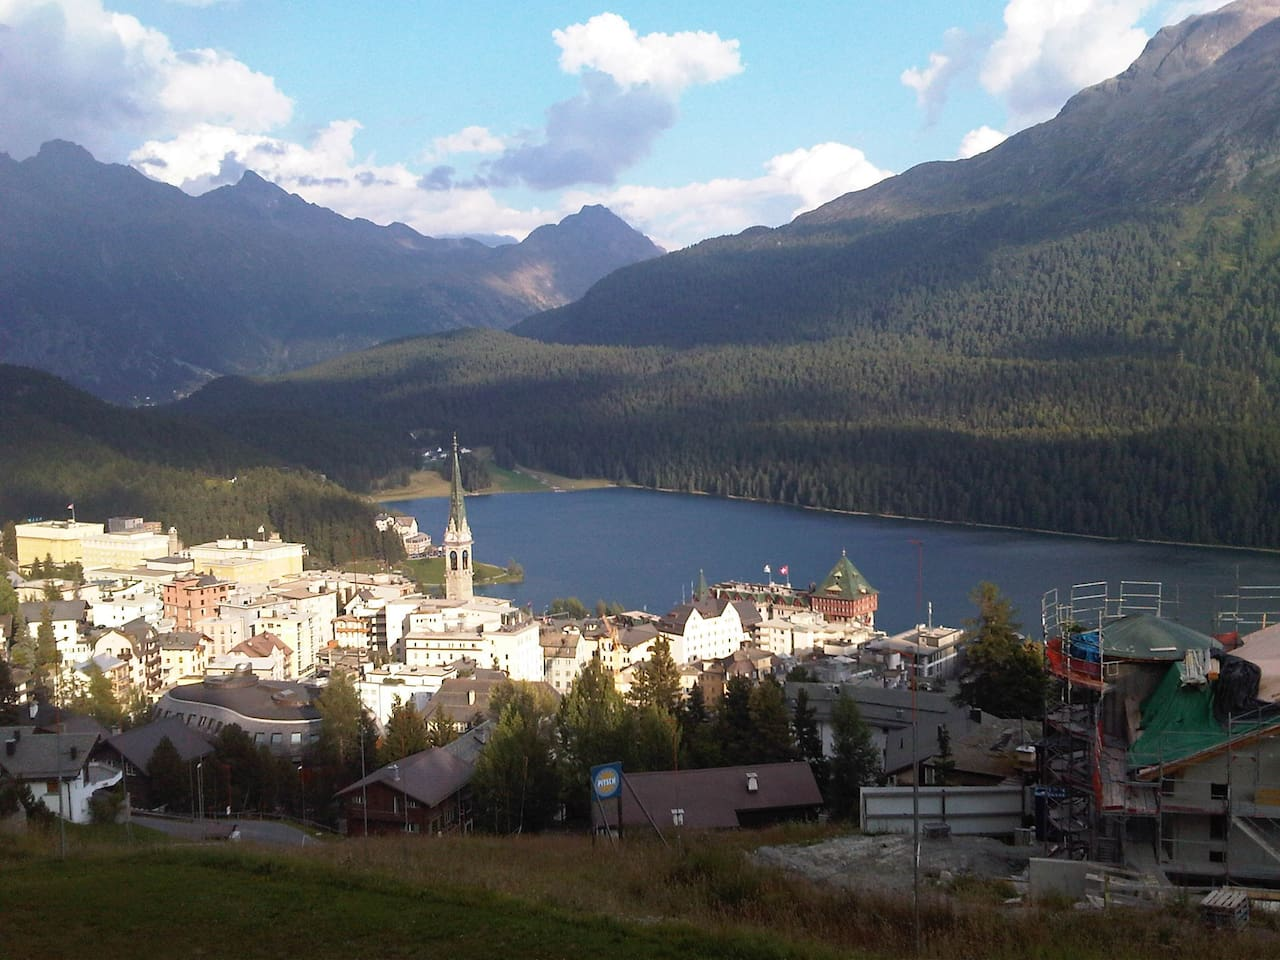 The view of St. Moritz from the apartment